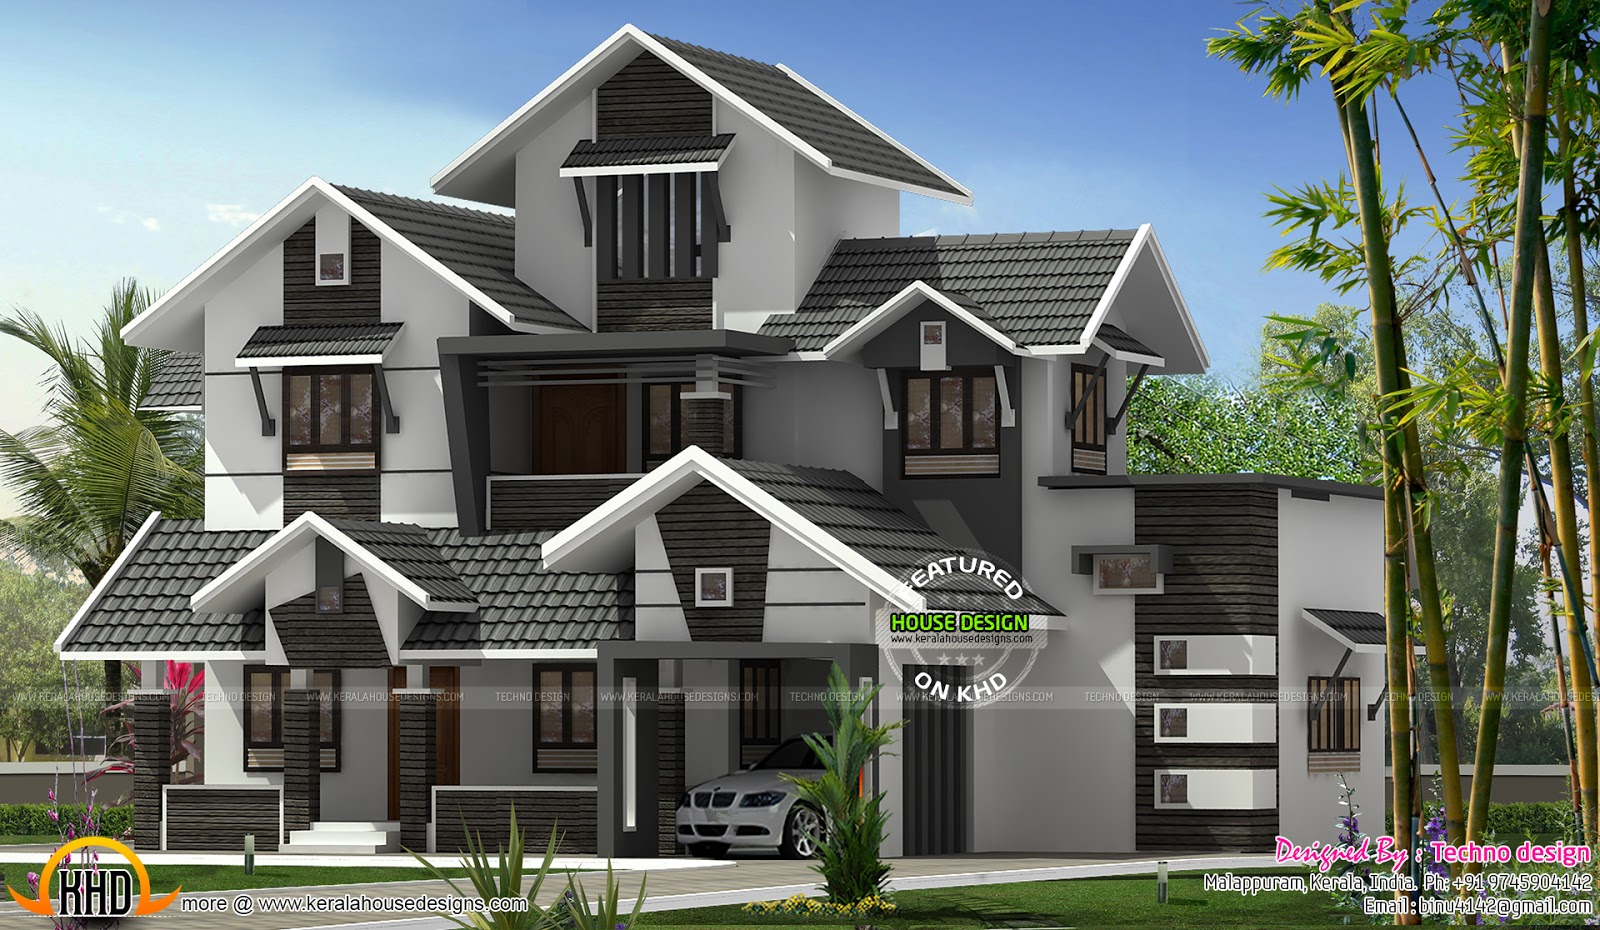 Modern kerala home design kerala home design and floor plans for House plans by design